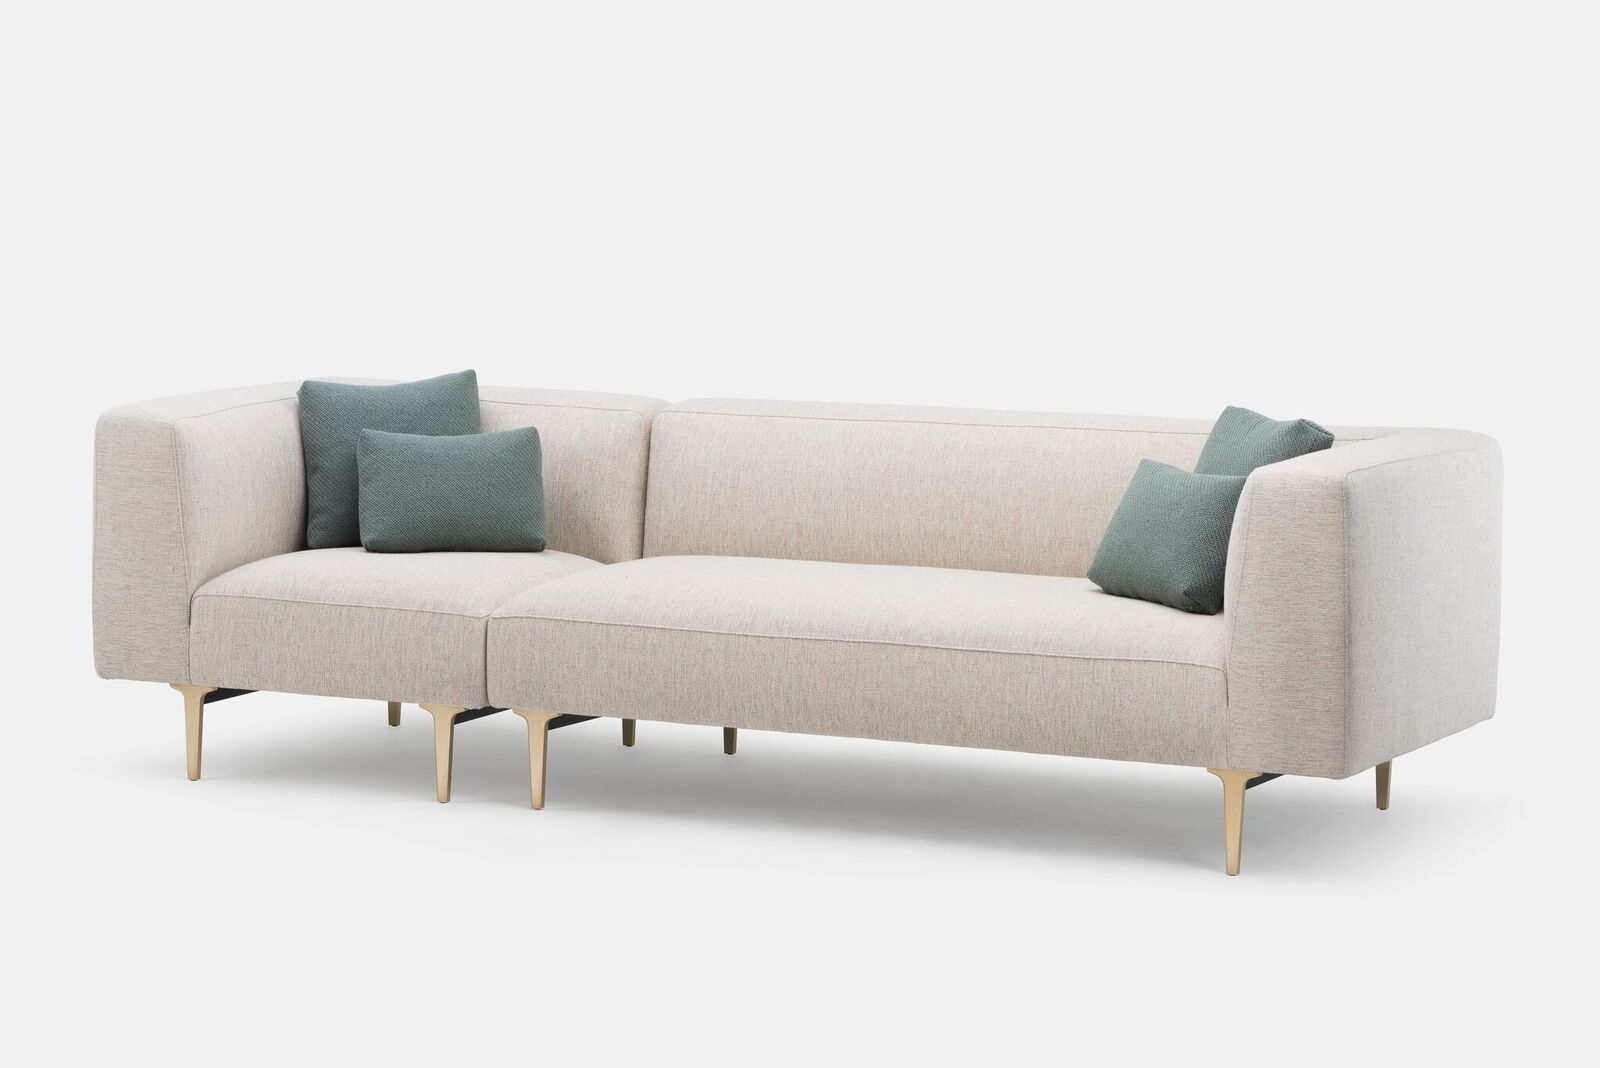 Planalto Sofa by Matthew Hilton_preview.jpeg